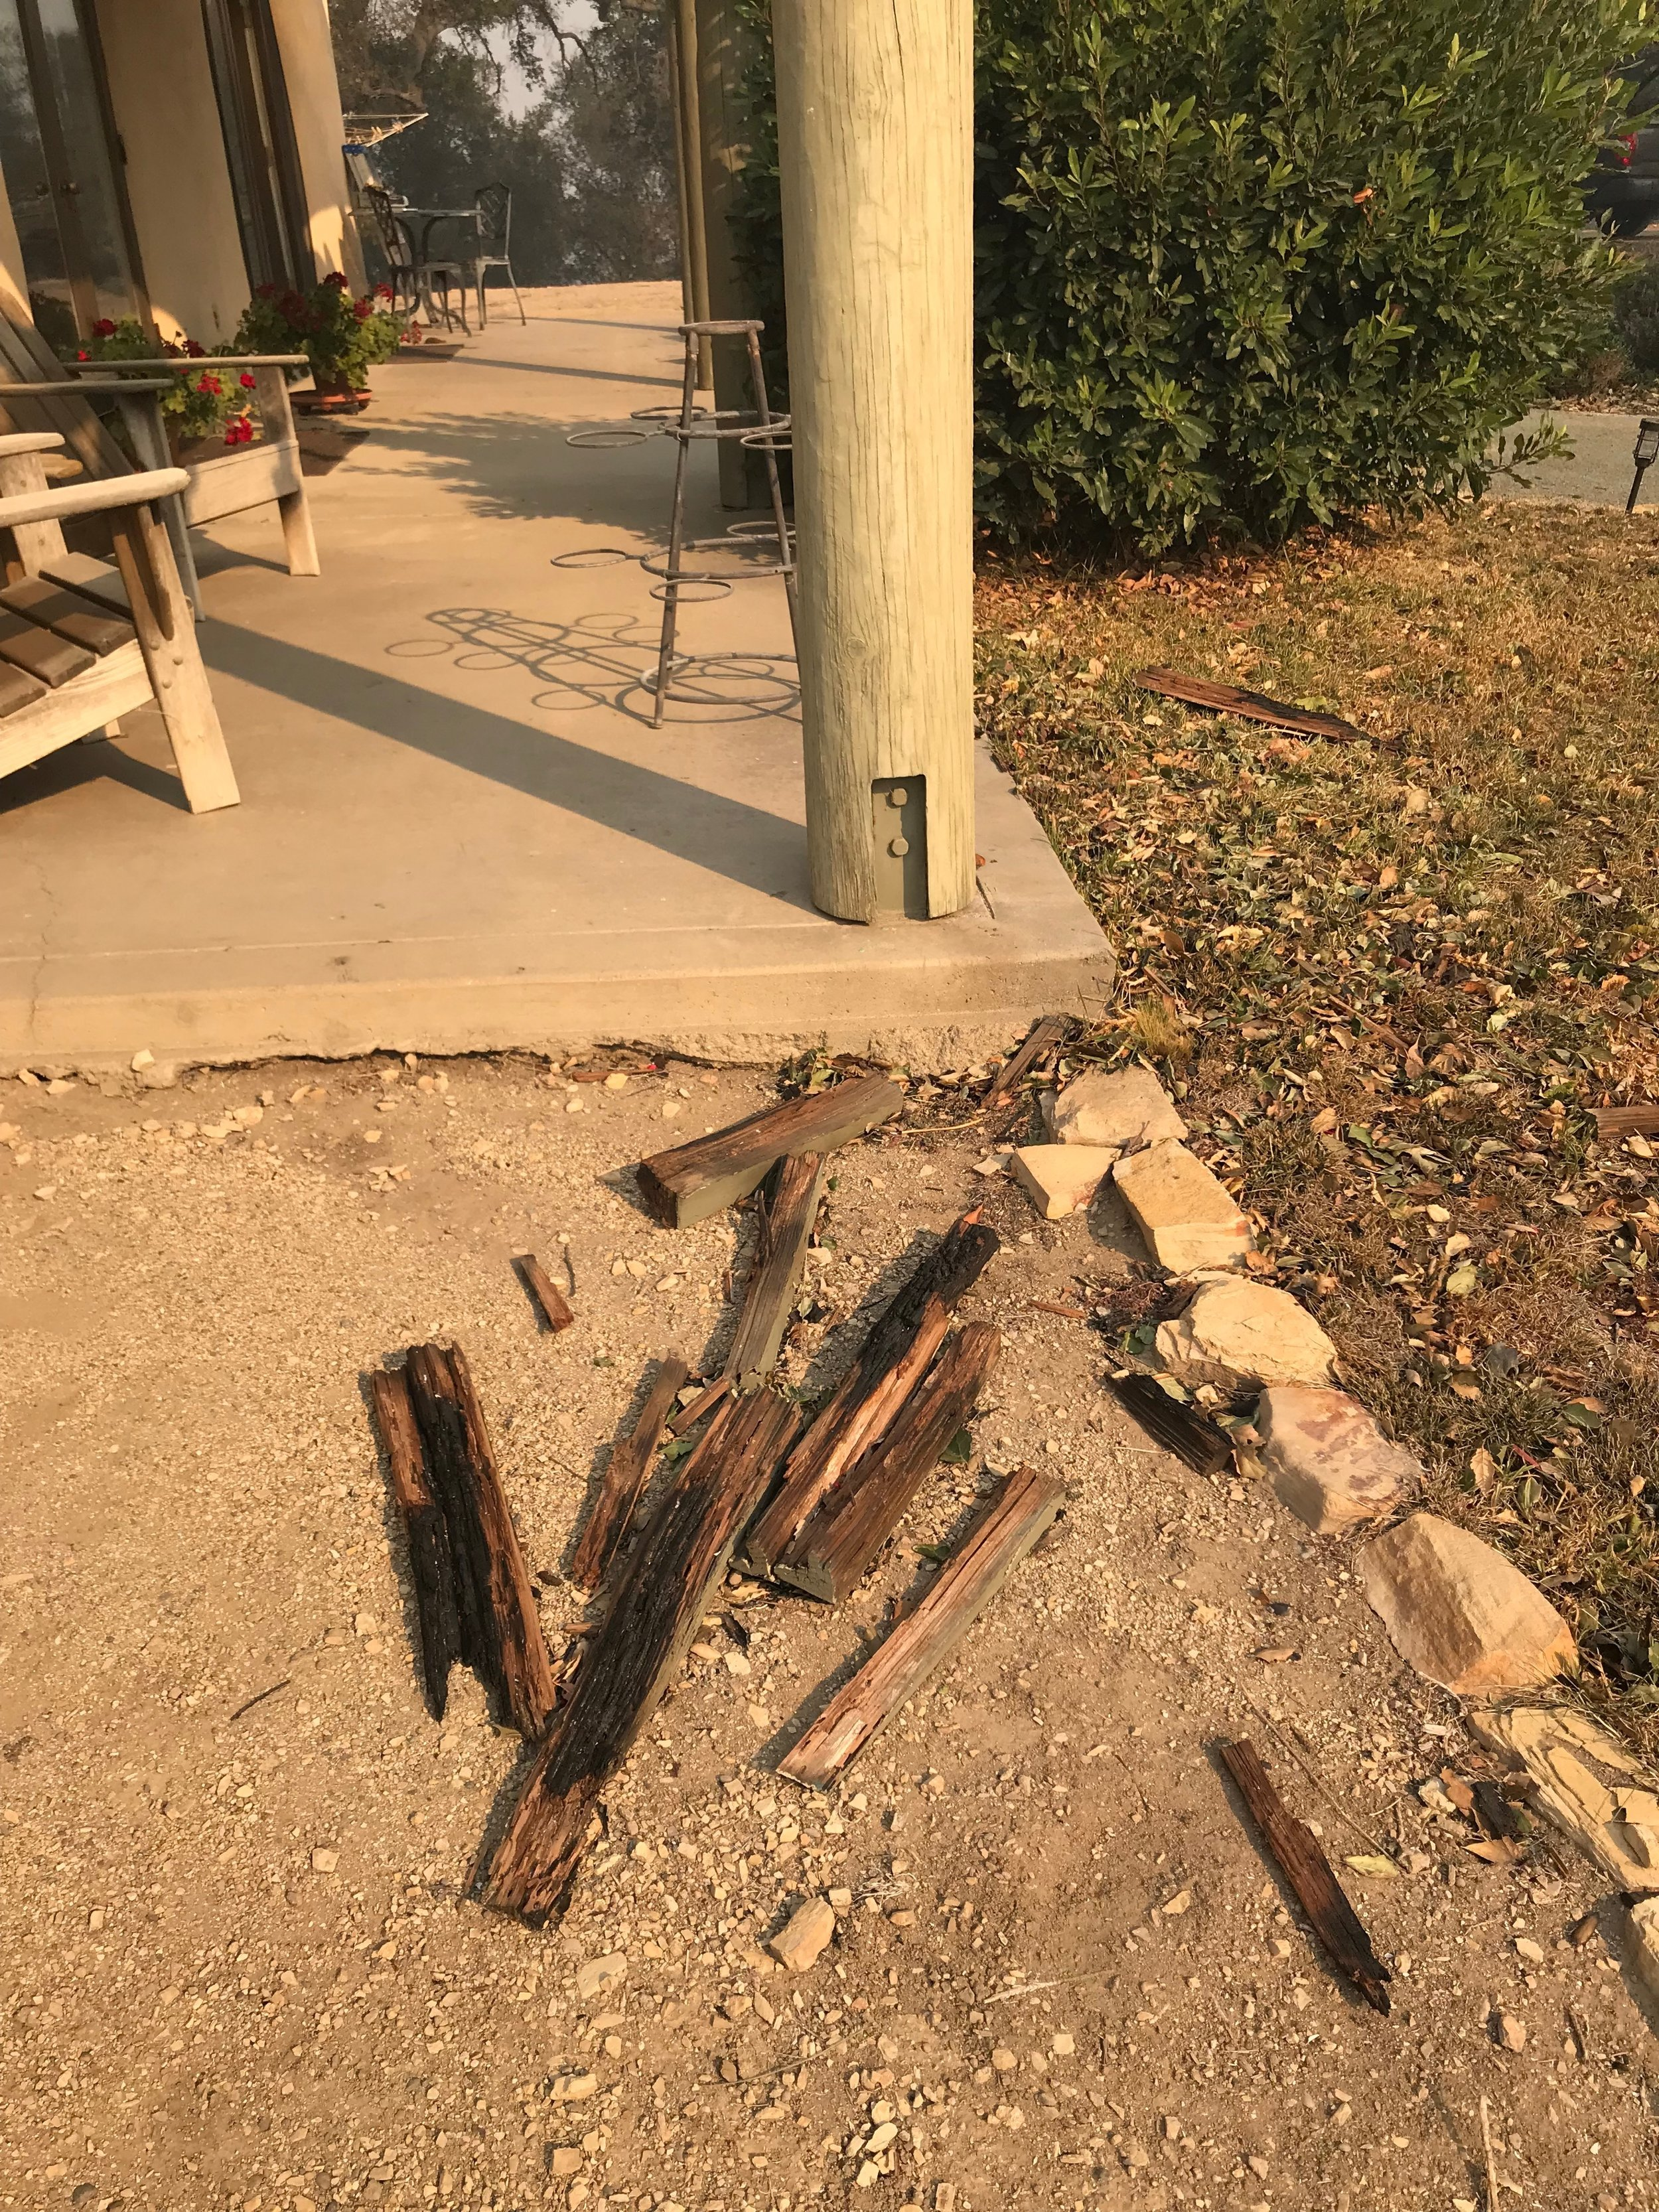 BURNED PIECES of the trellis for the Visitor Center/Caretaker Quarters from the 2017 Thomas Fire. The ground immediately around the trellis was untouched by fire. (Photo: Buzz Glasky, December 2017)